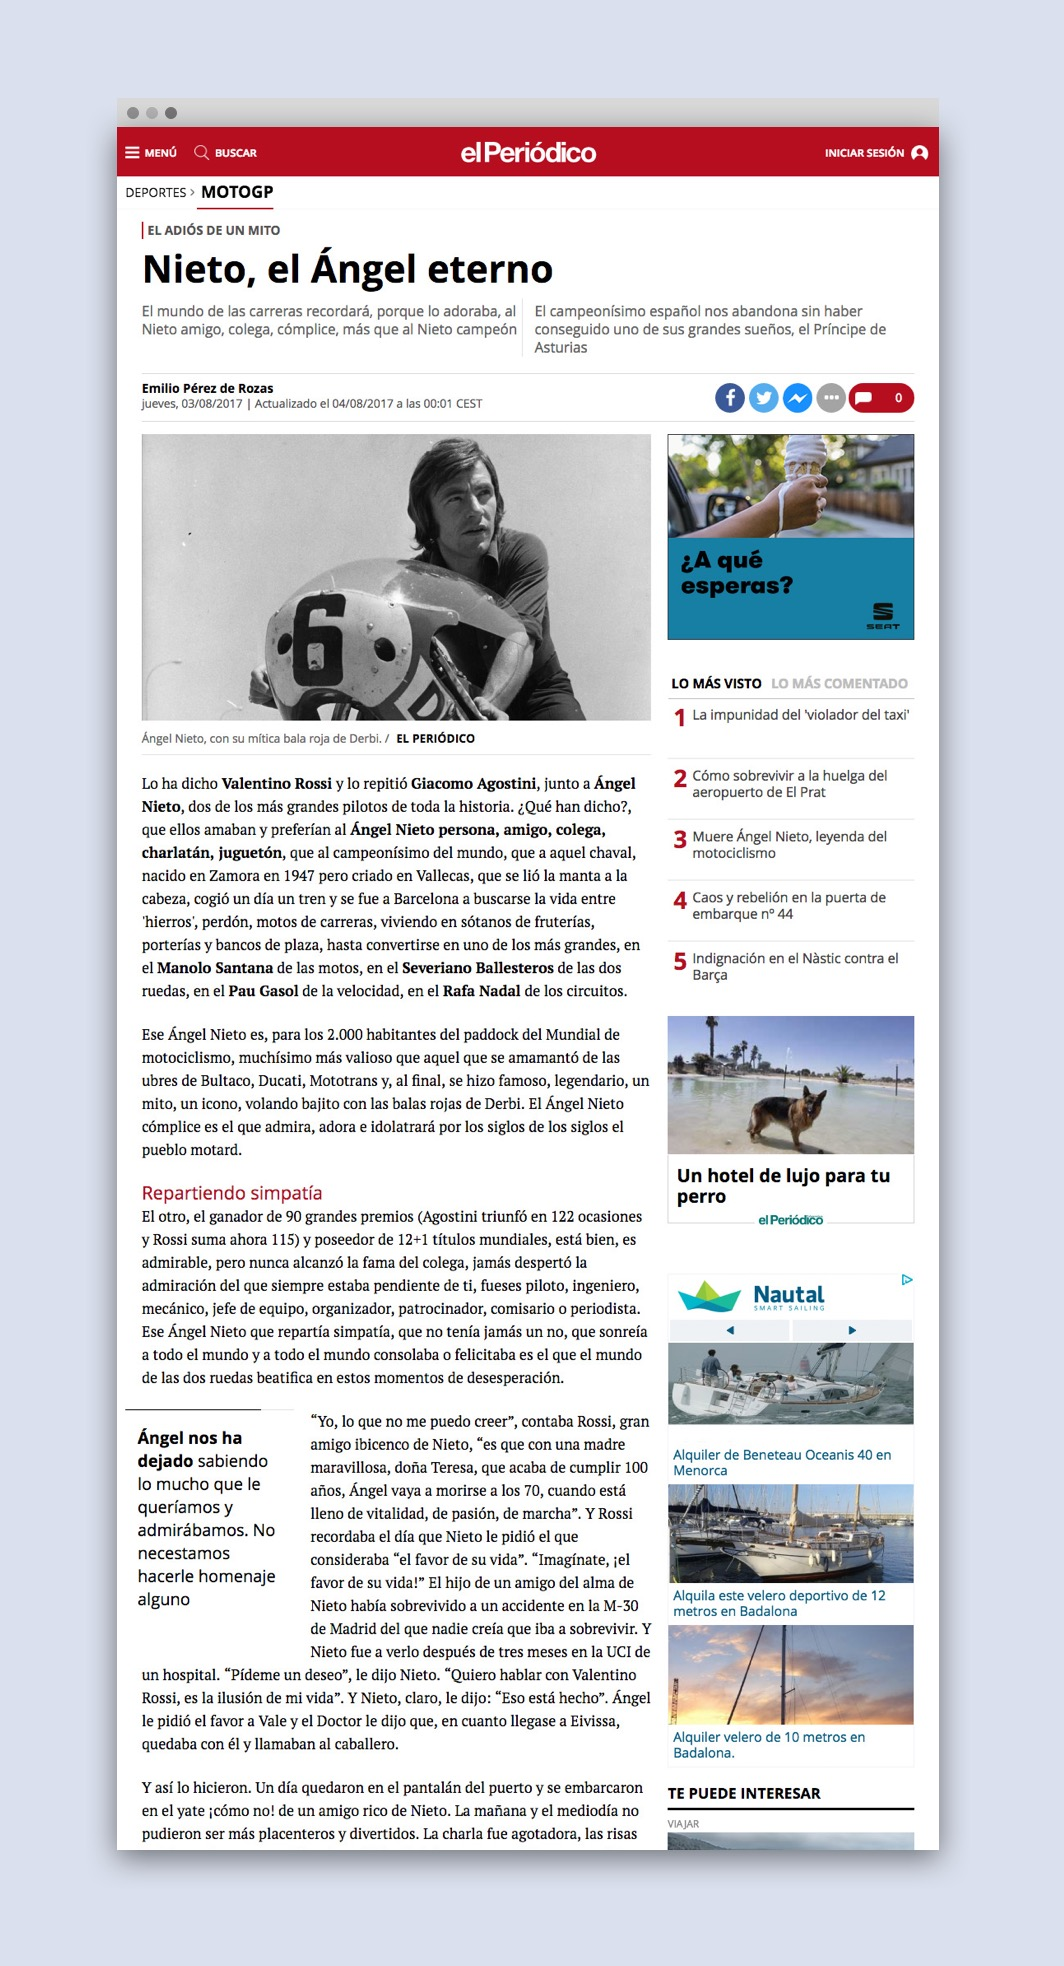 Article a la web d'El Periodico